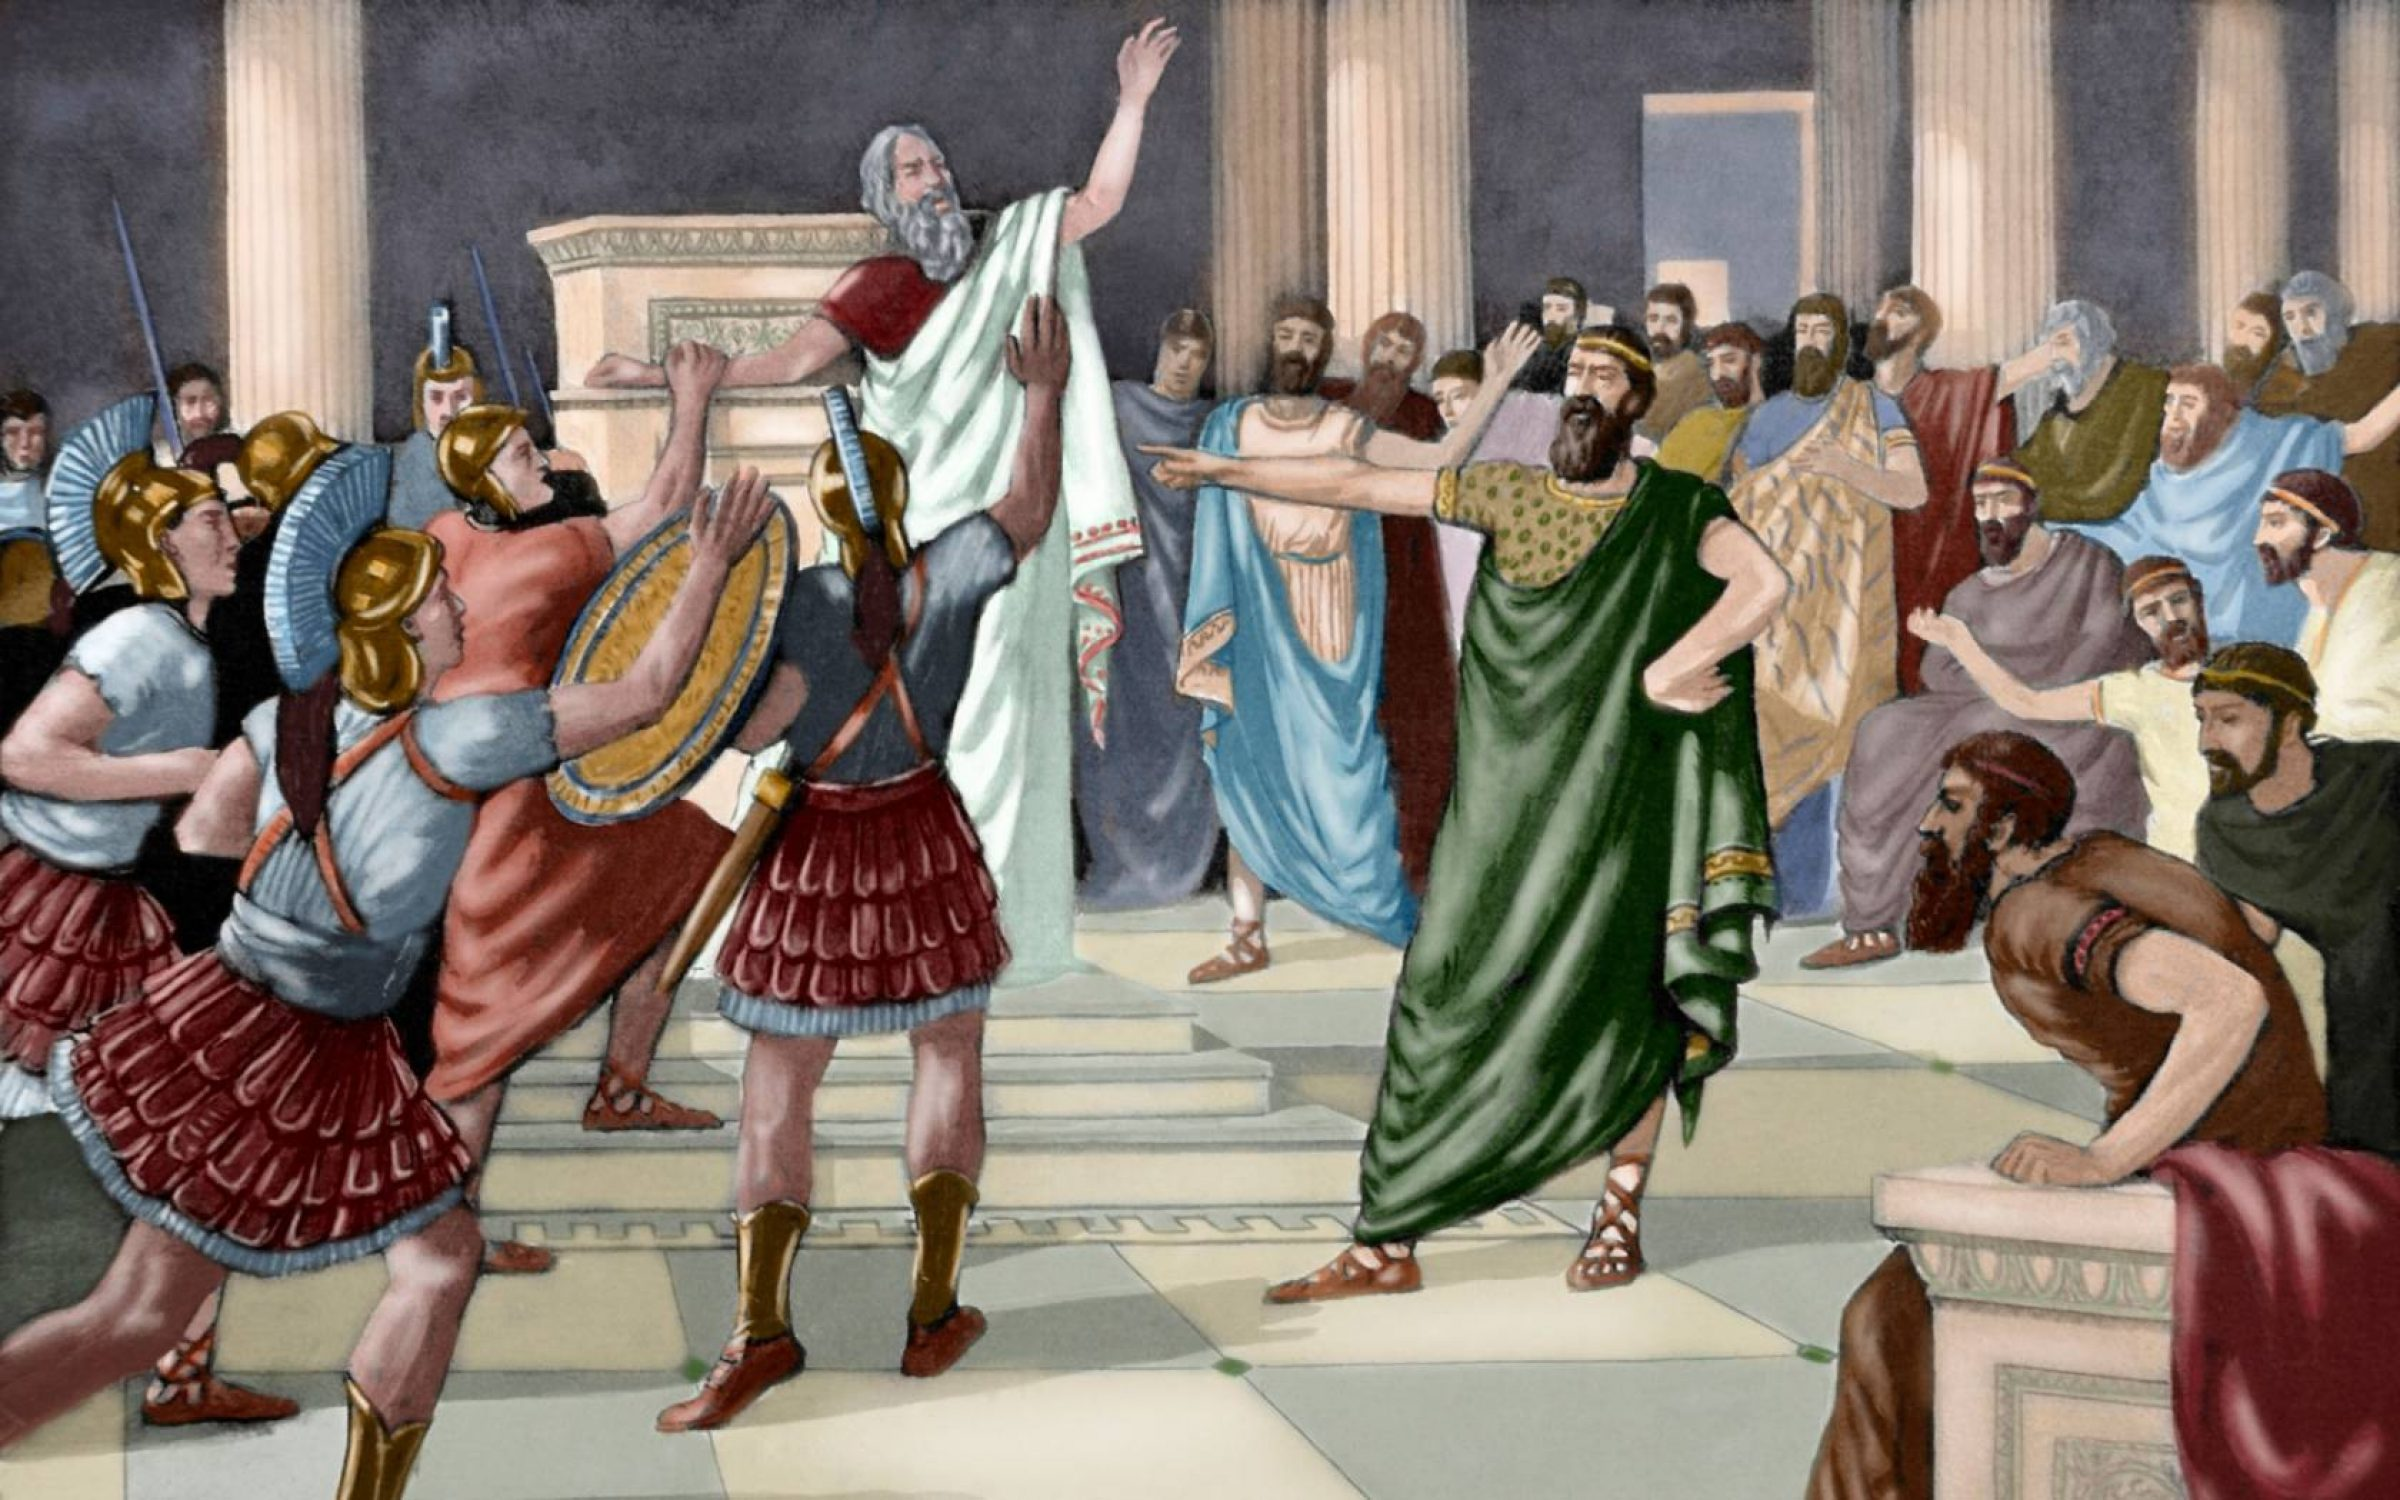 Print of arguments in fifth century Athens. Credit: PHAS/Universal Images Group via Getty Images)